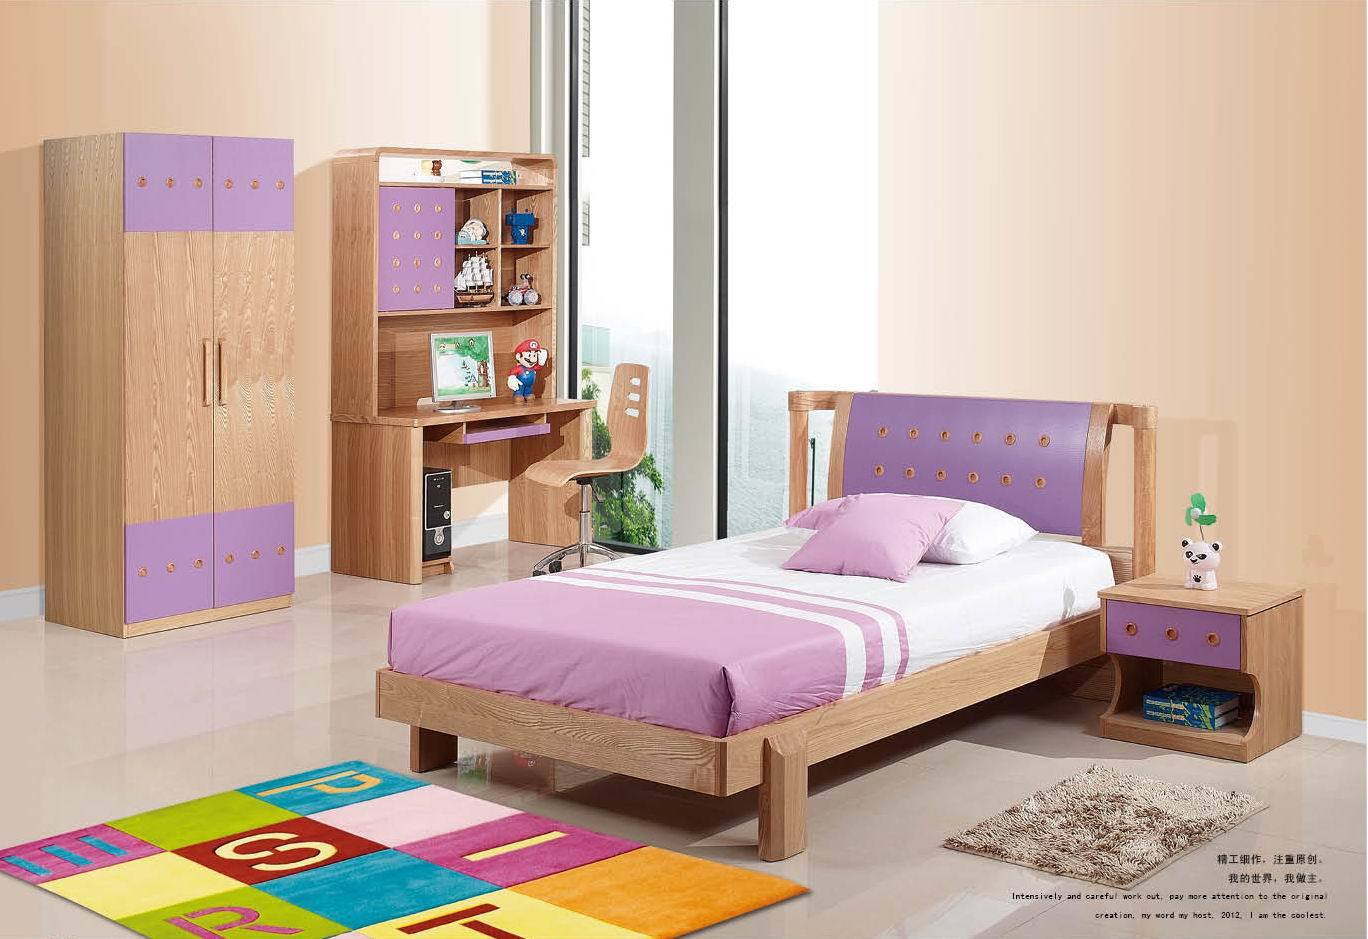 China kids bedroom set jkd 20130 china kids bedroom kids furniture - Kids bedroom photo ...